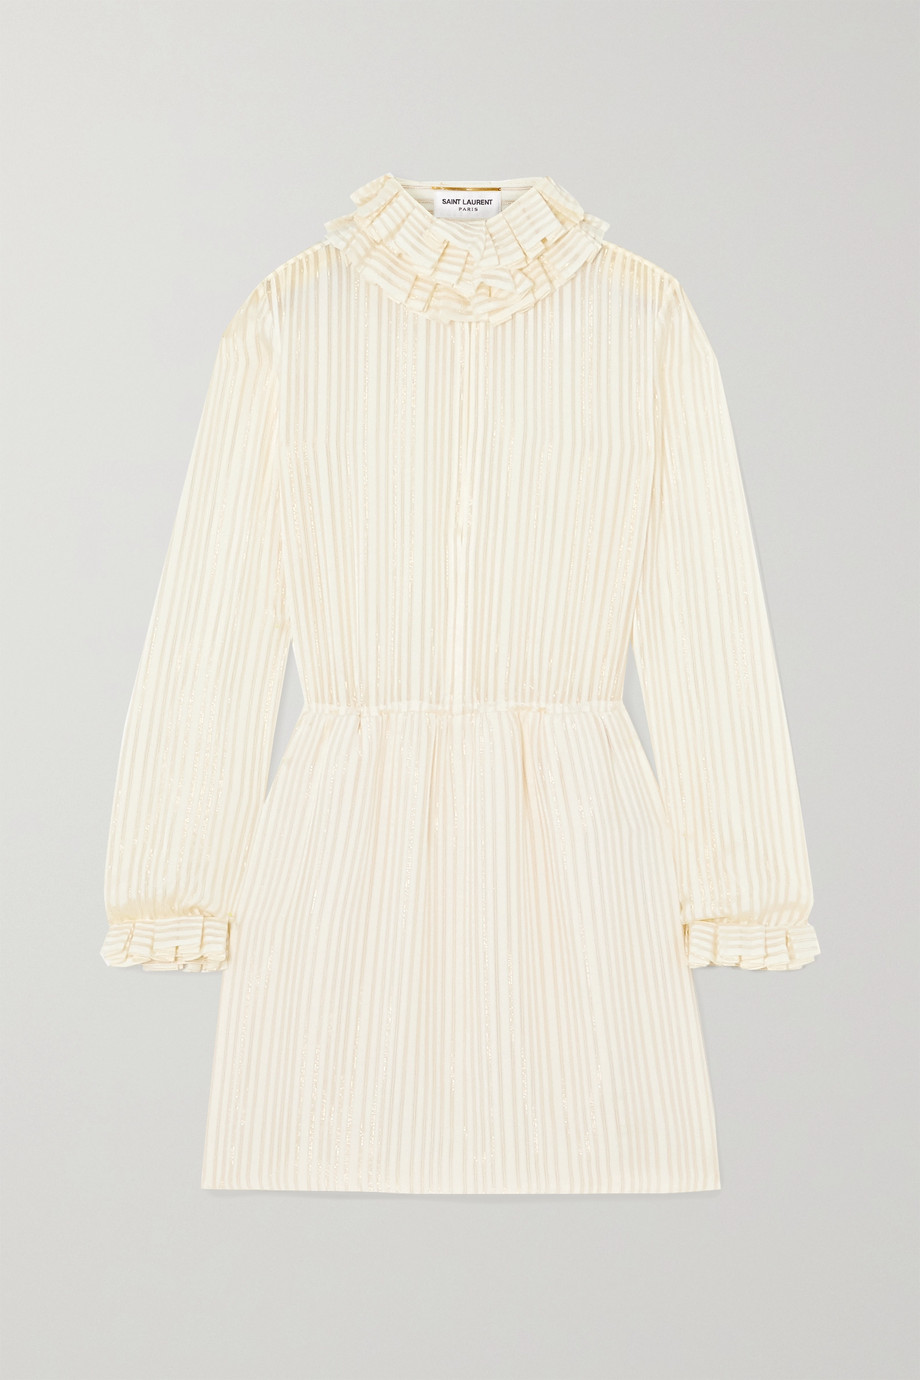 SAINT LAURENT Ruffled metallic striped silk-blend mini dress